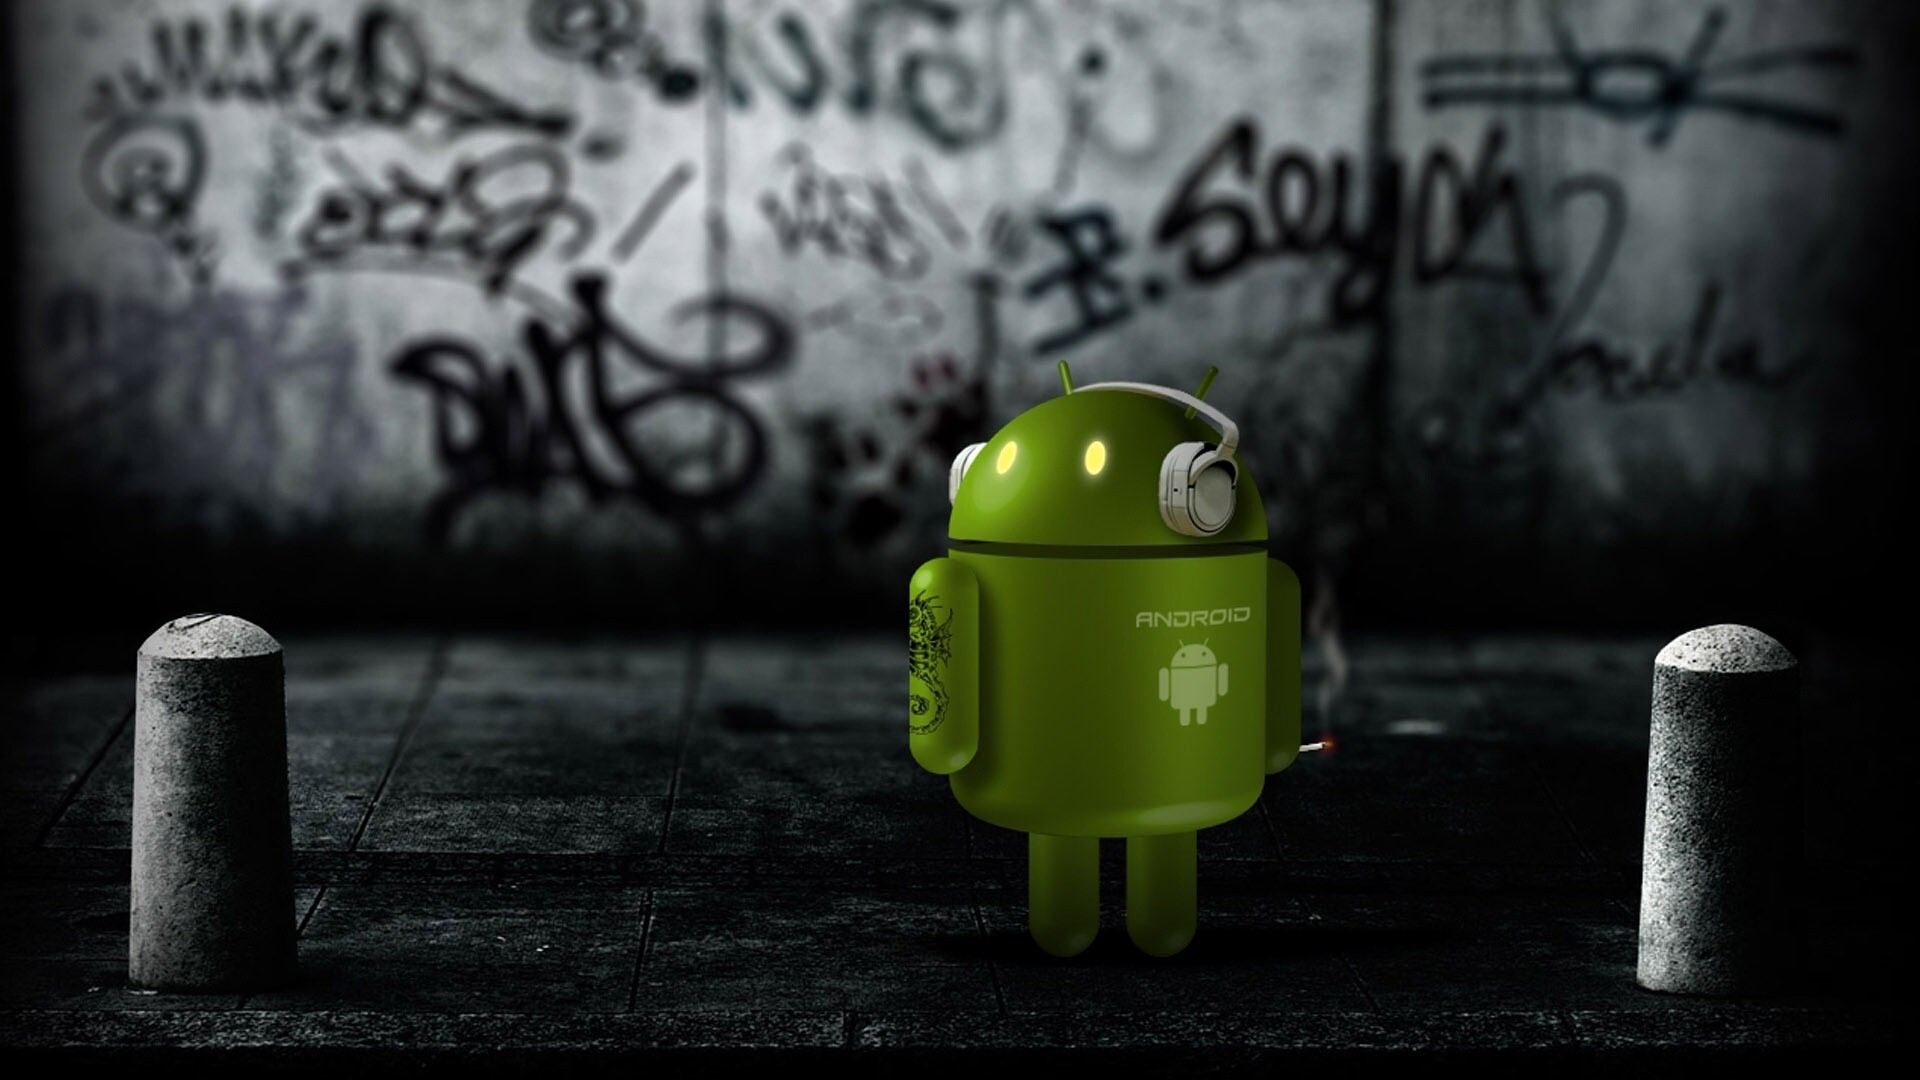 Android Logo HD Wallpaper | HD Wallpapers